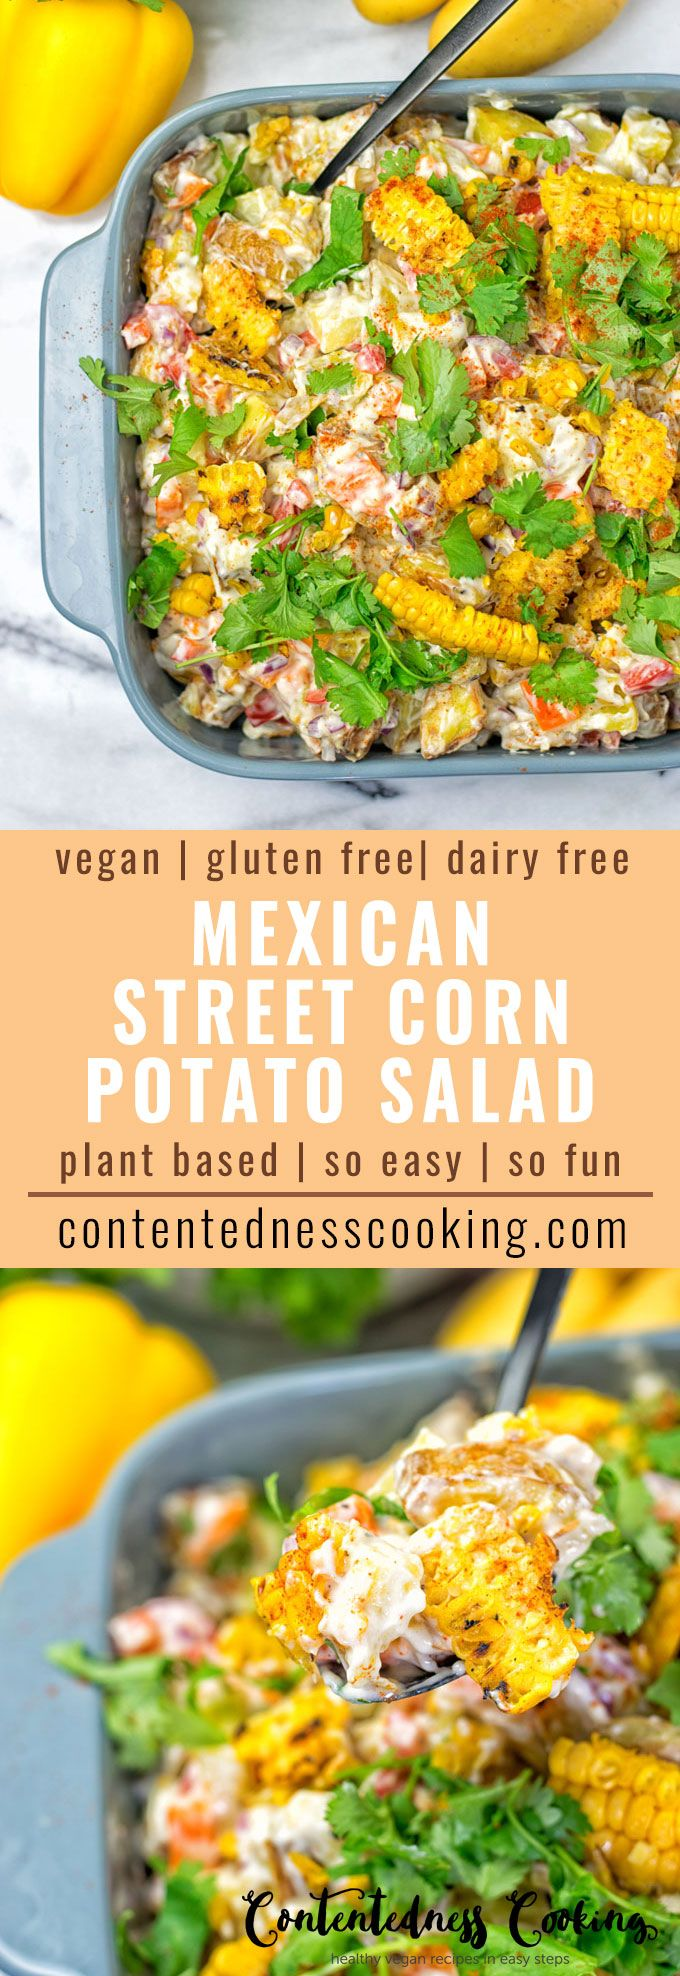 Mexican Street Corn Potato Salad tastes like summer thanks to the inclusion of fresh roasted corn, potatoes, and vegan mayonnaise.